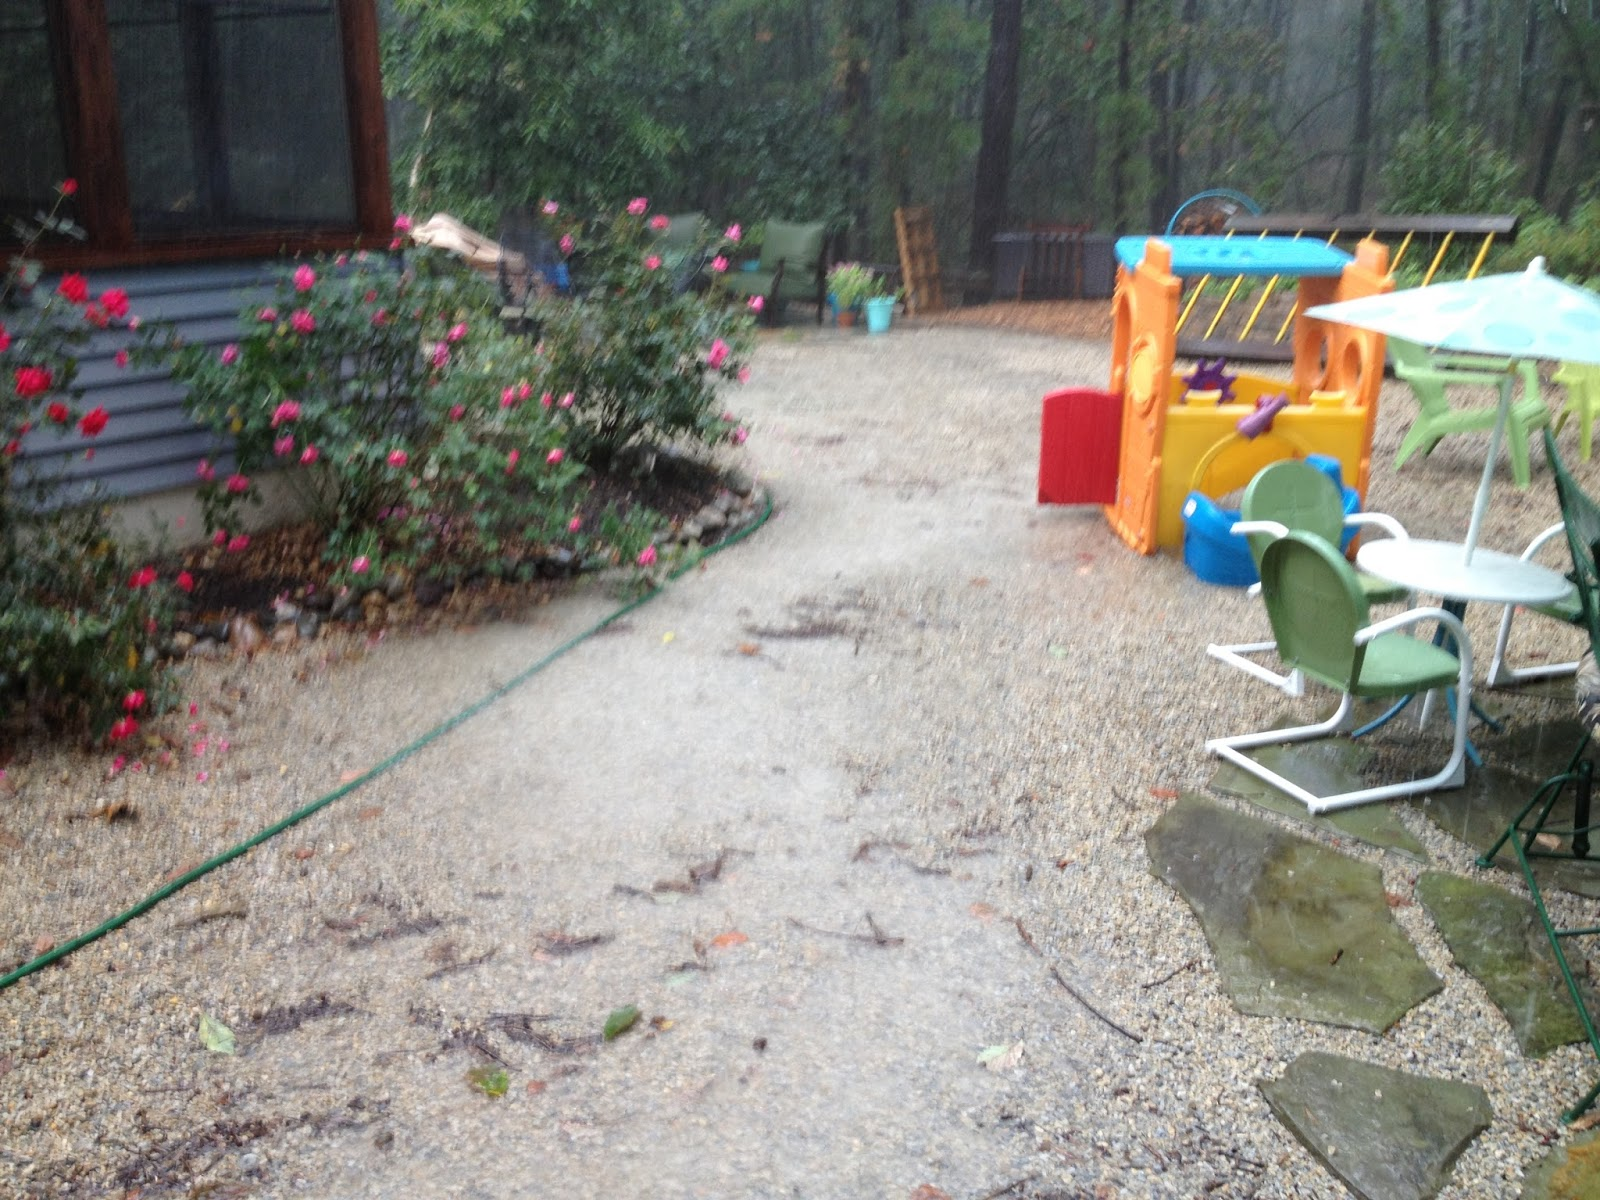 property flooding issues that could have been avoided